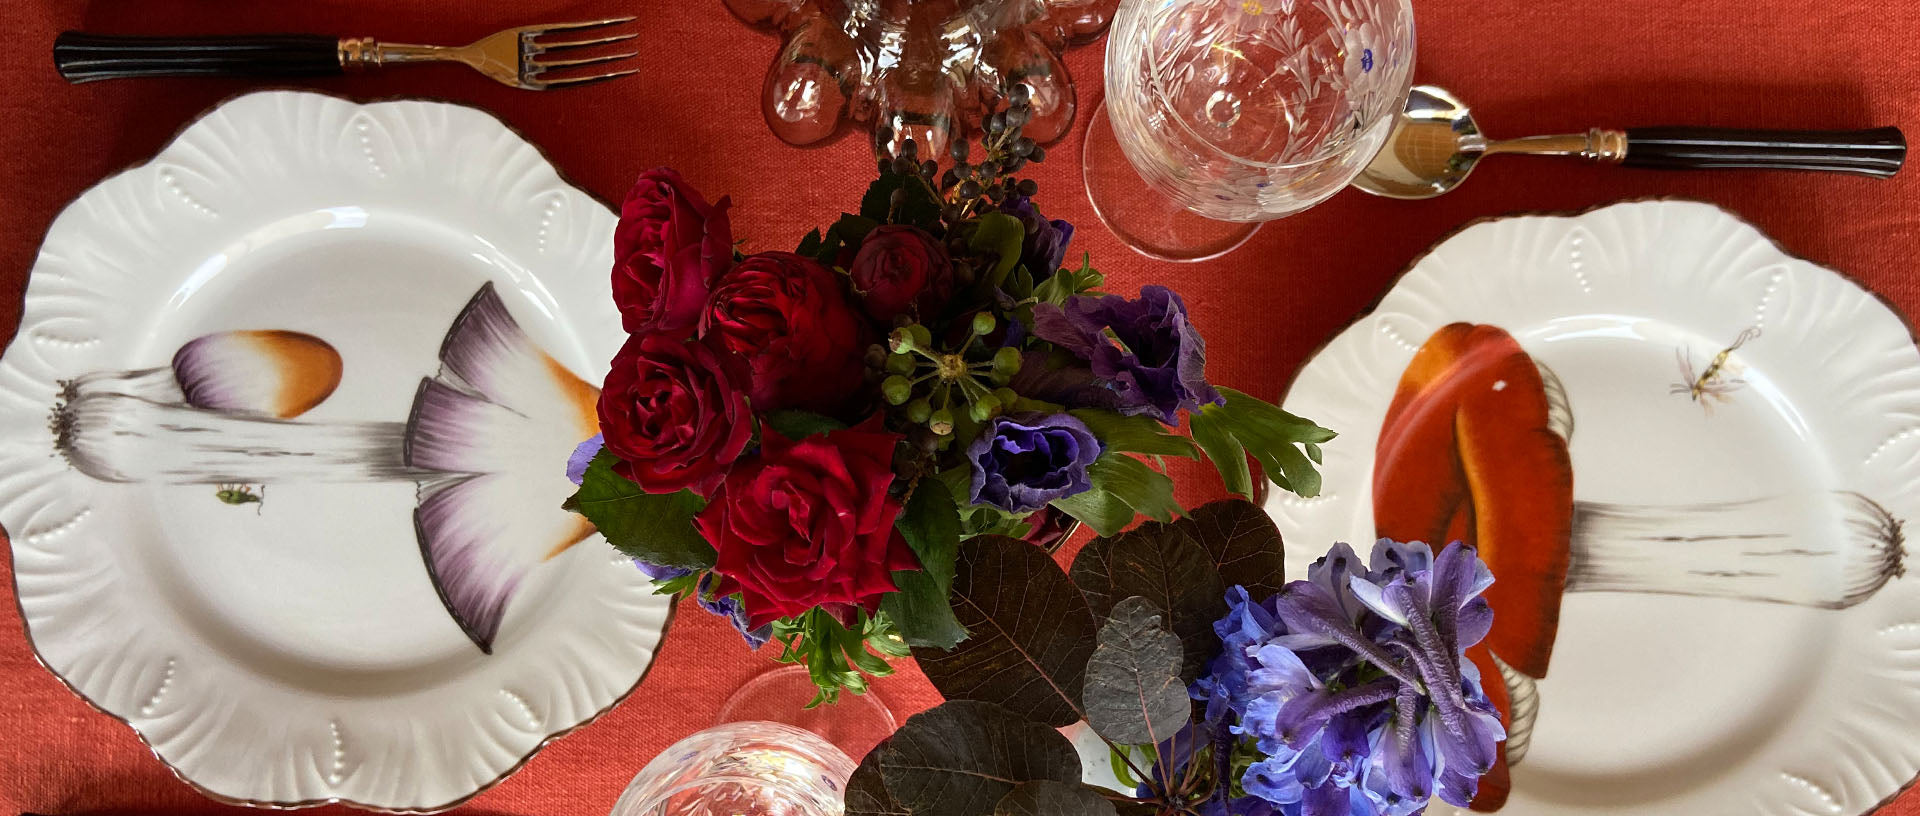 Autumnal tabletop by Bonadea with handpainted plates